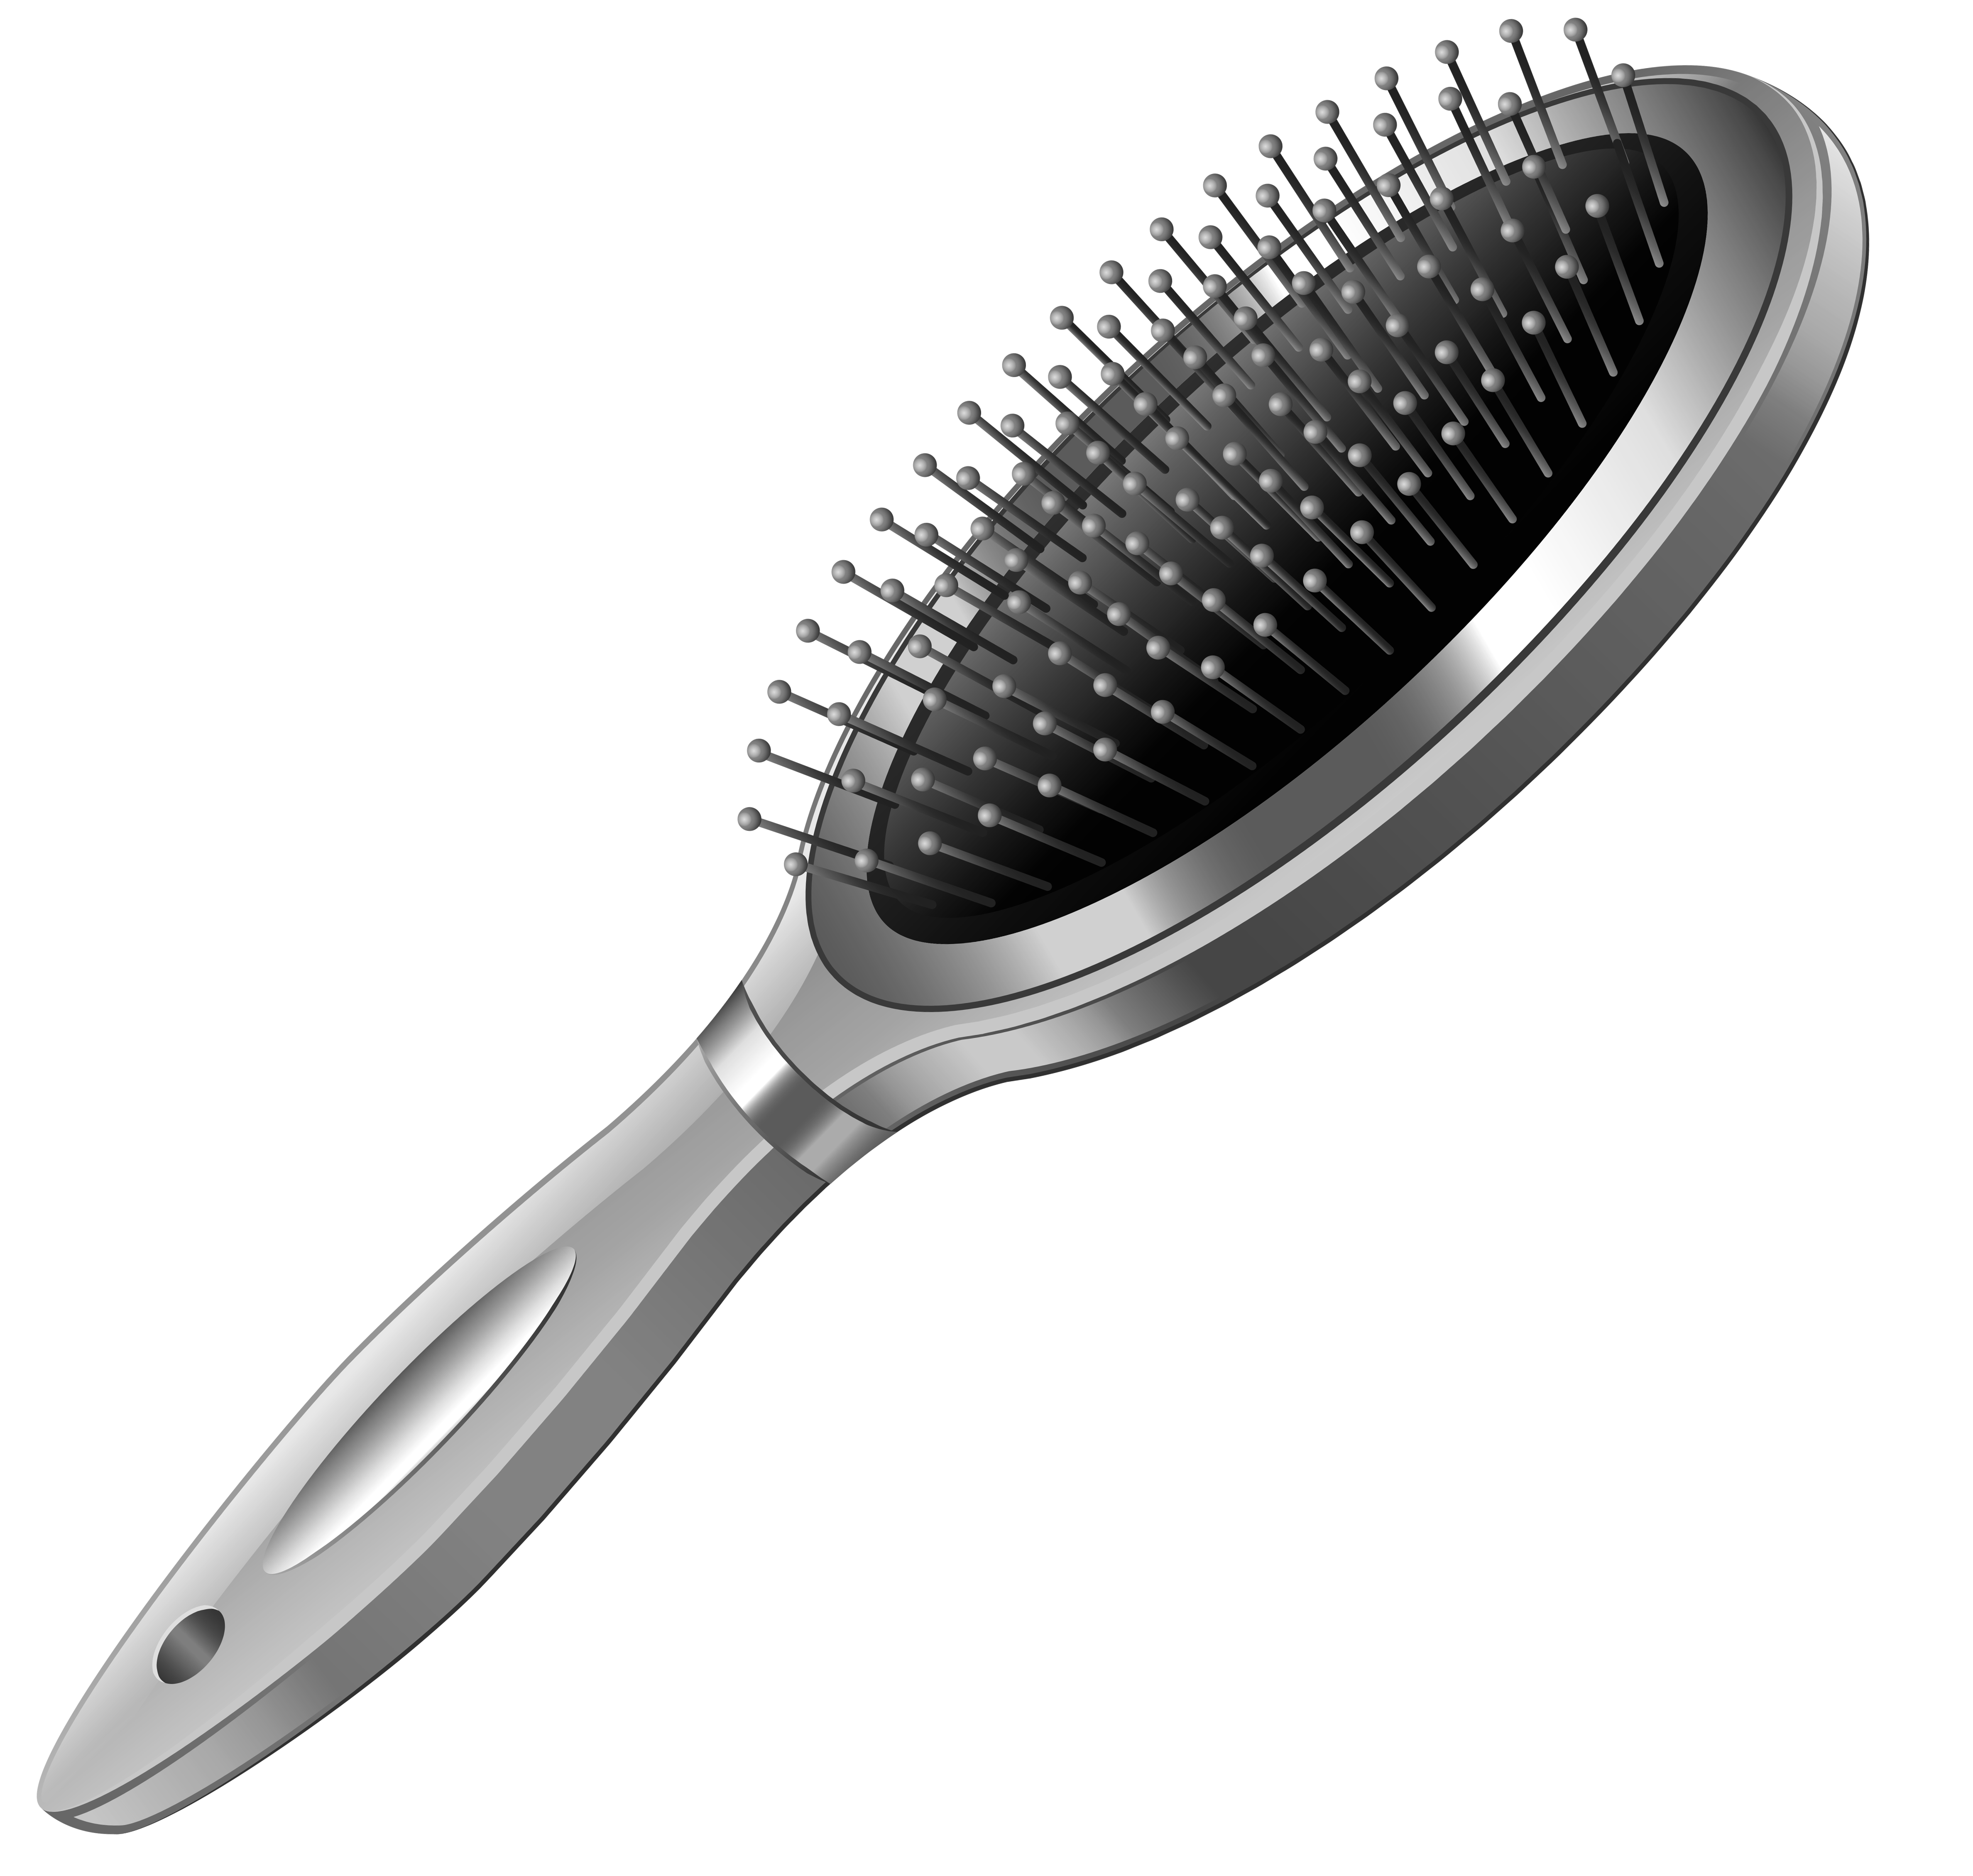 Brush clipart transparent background. Silver hairbrush png picture